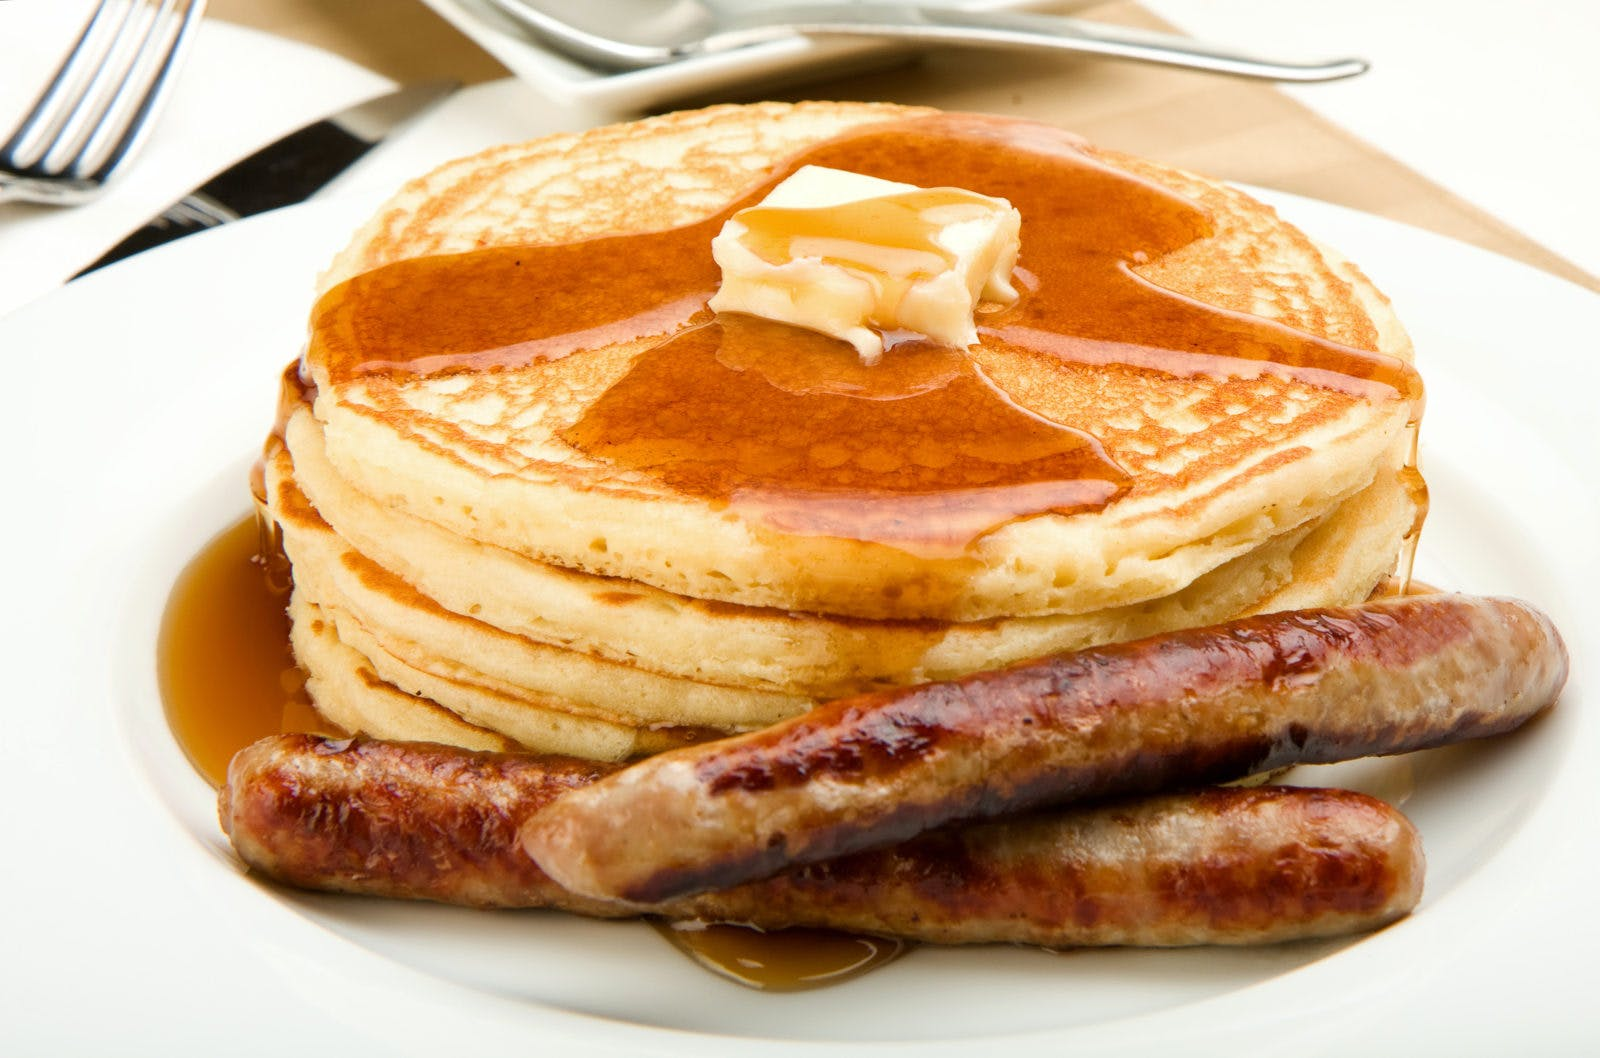 Breakfast of coffee pancakes and sausage with maple syrup